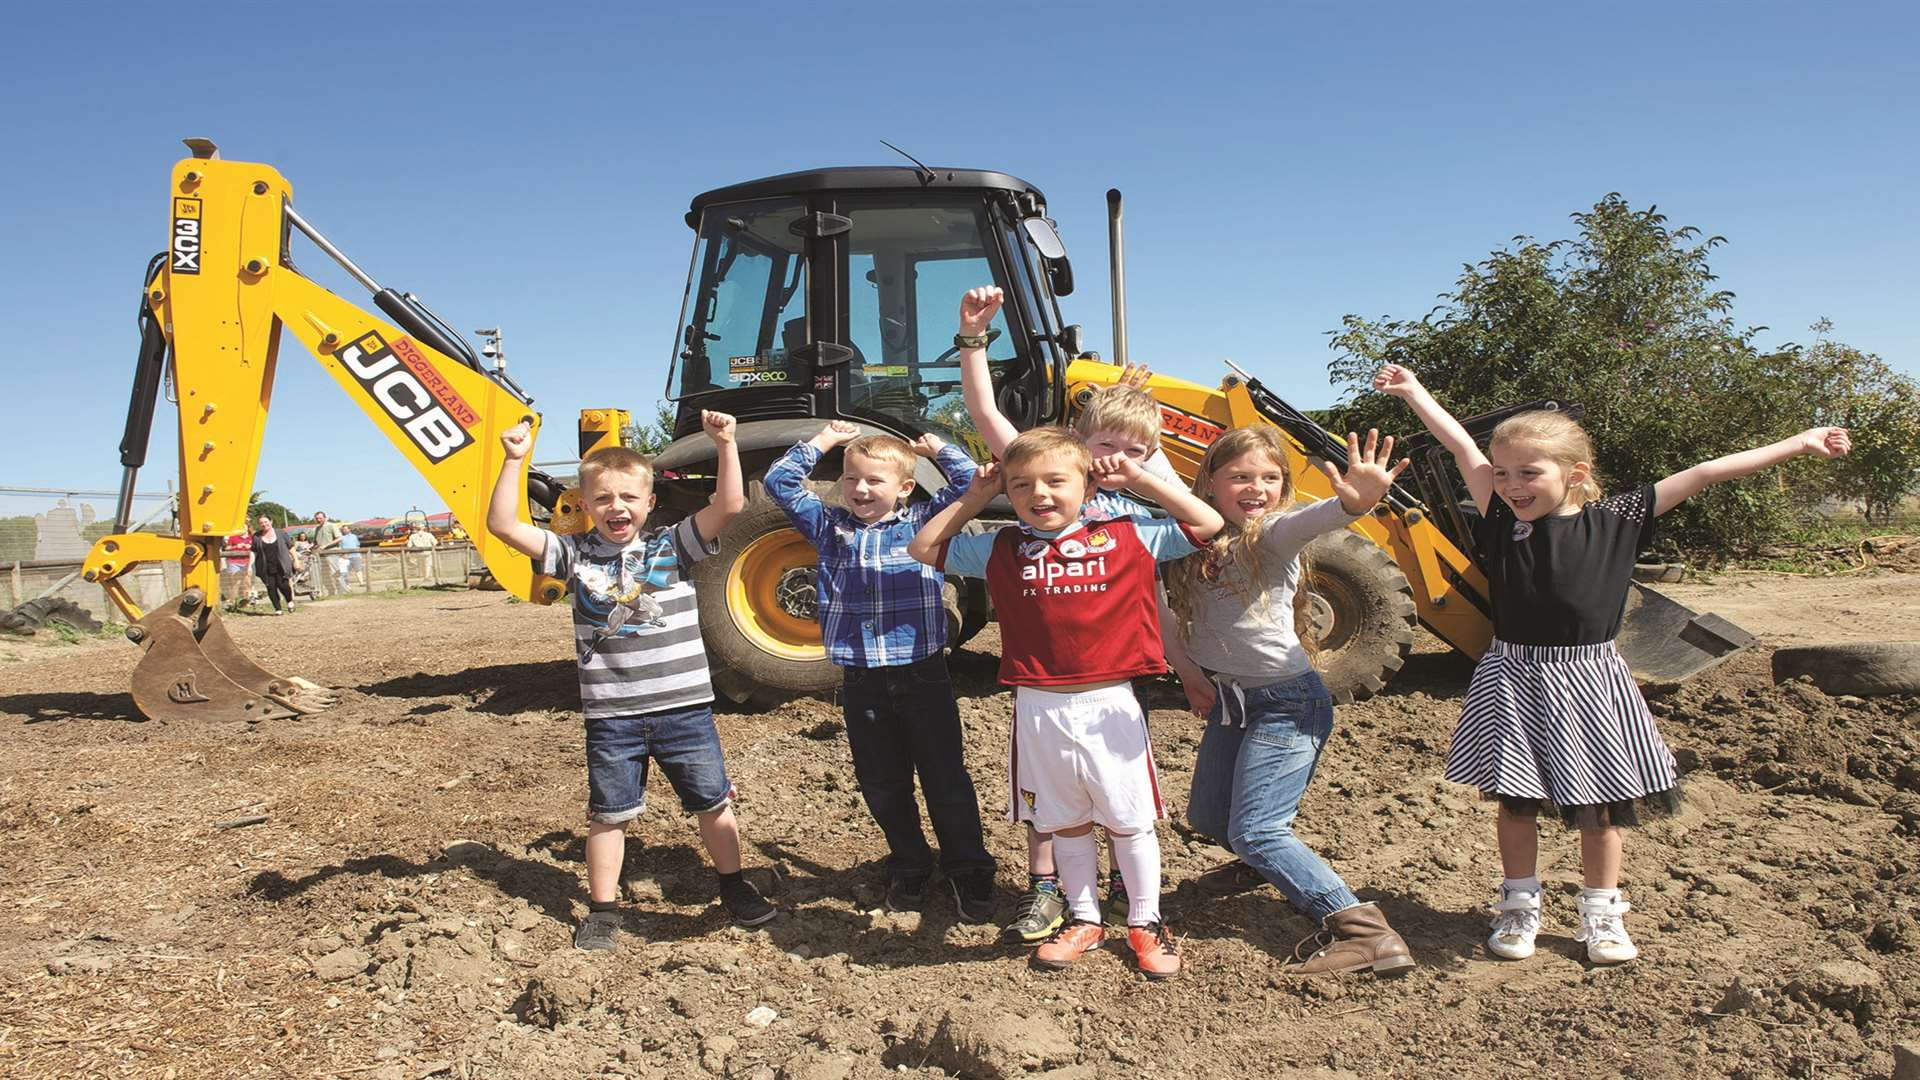 Summer holiday fun at Diggerland